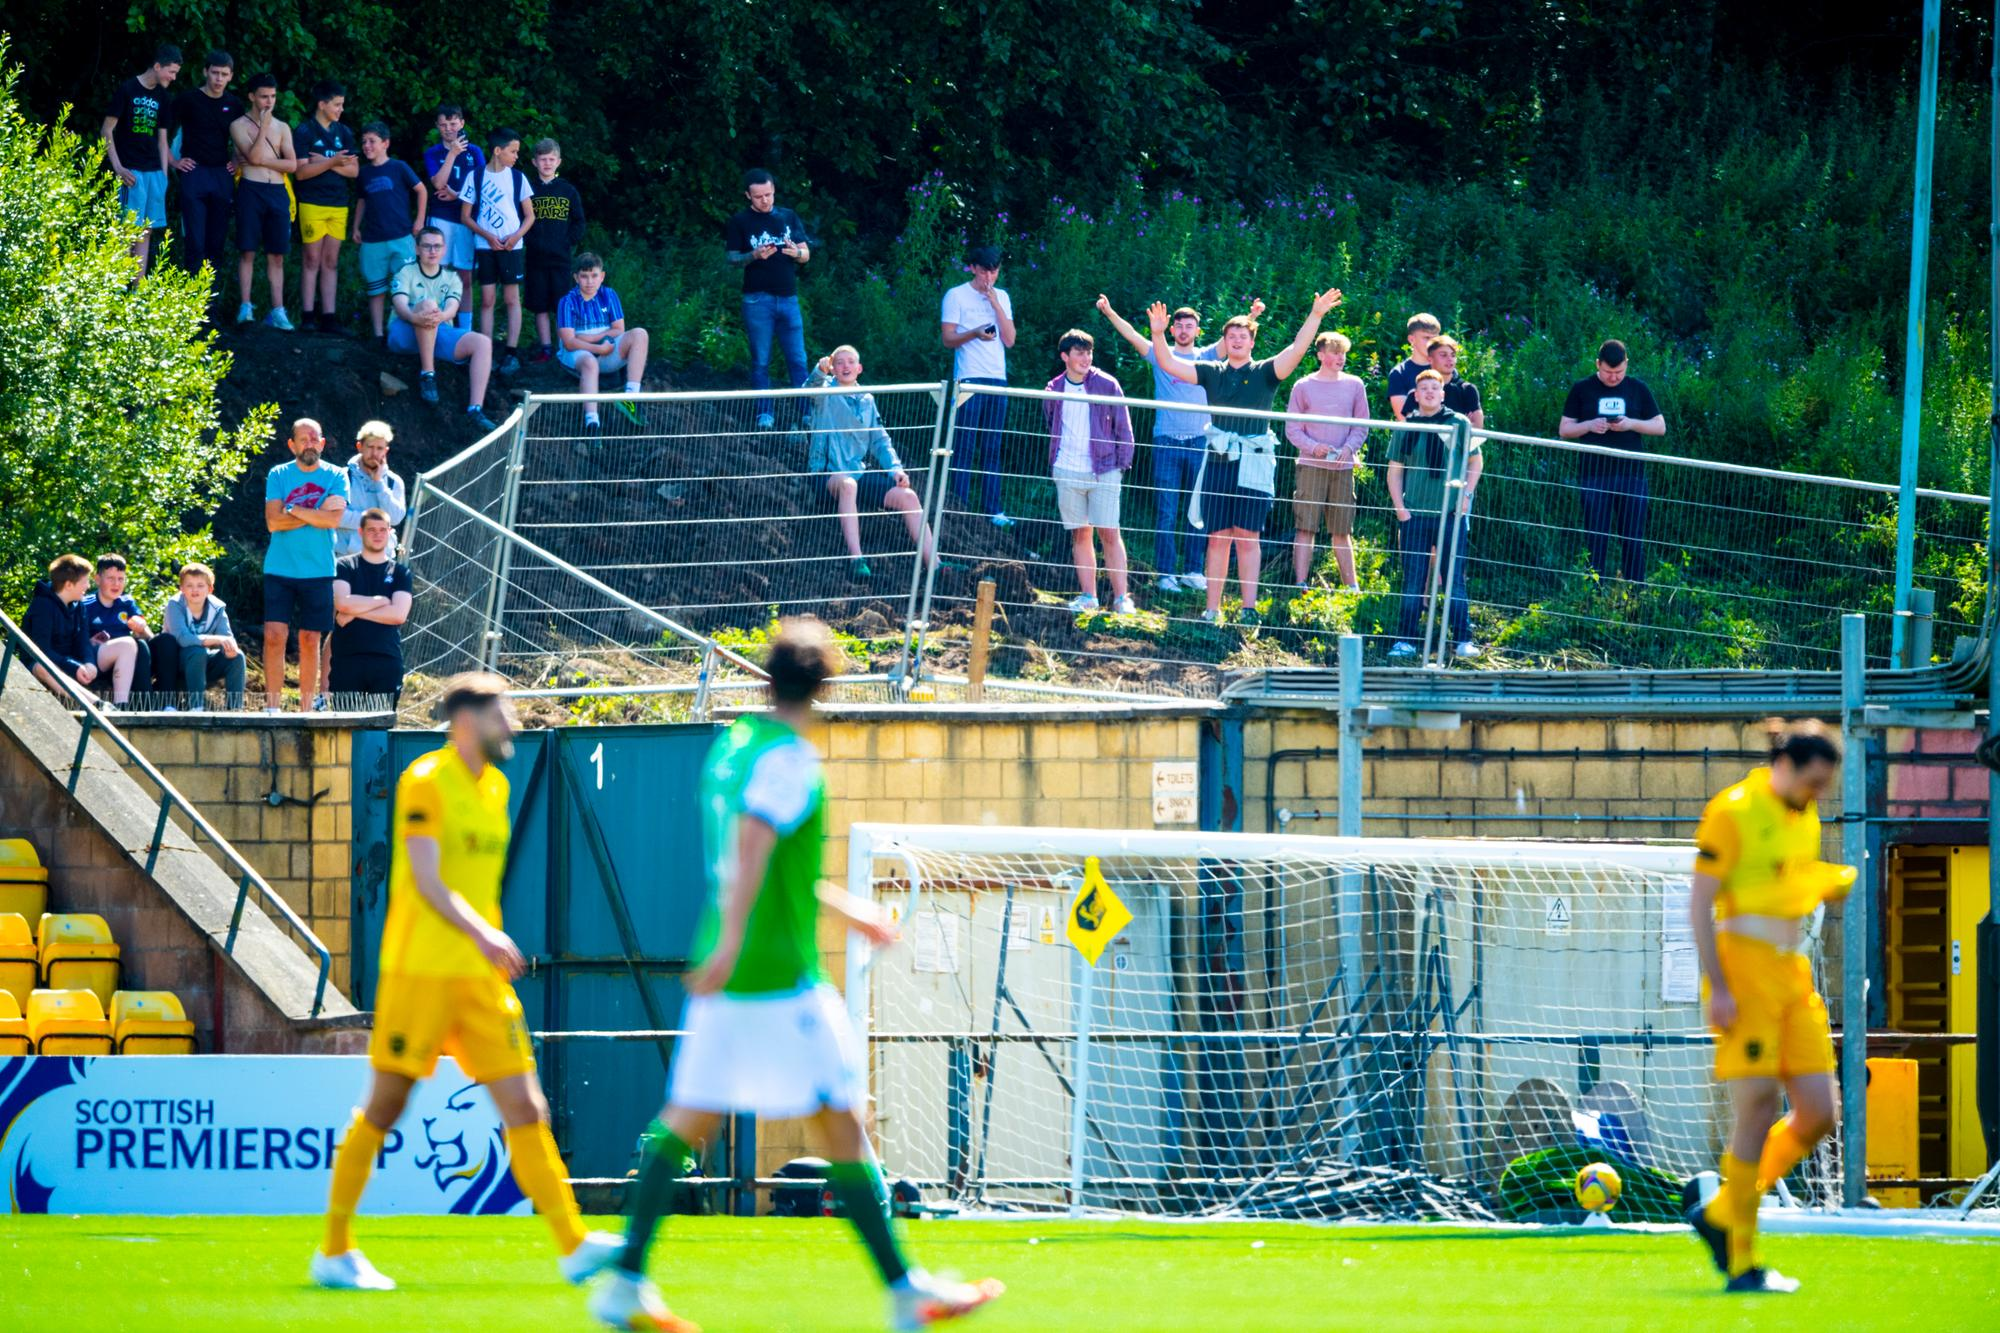 'Perfect start to the season' - Hibs fans react to fine 4-1 away win against Livingston